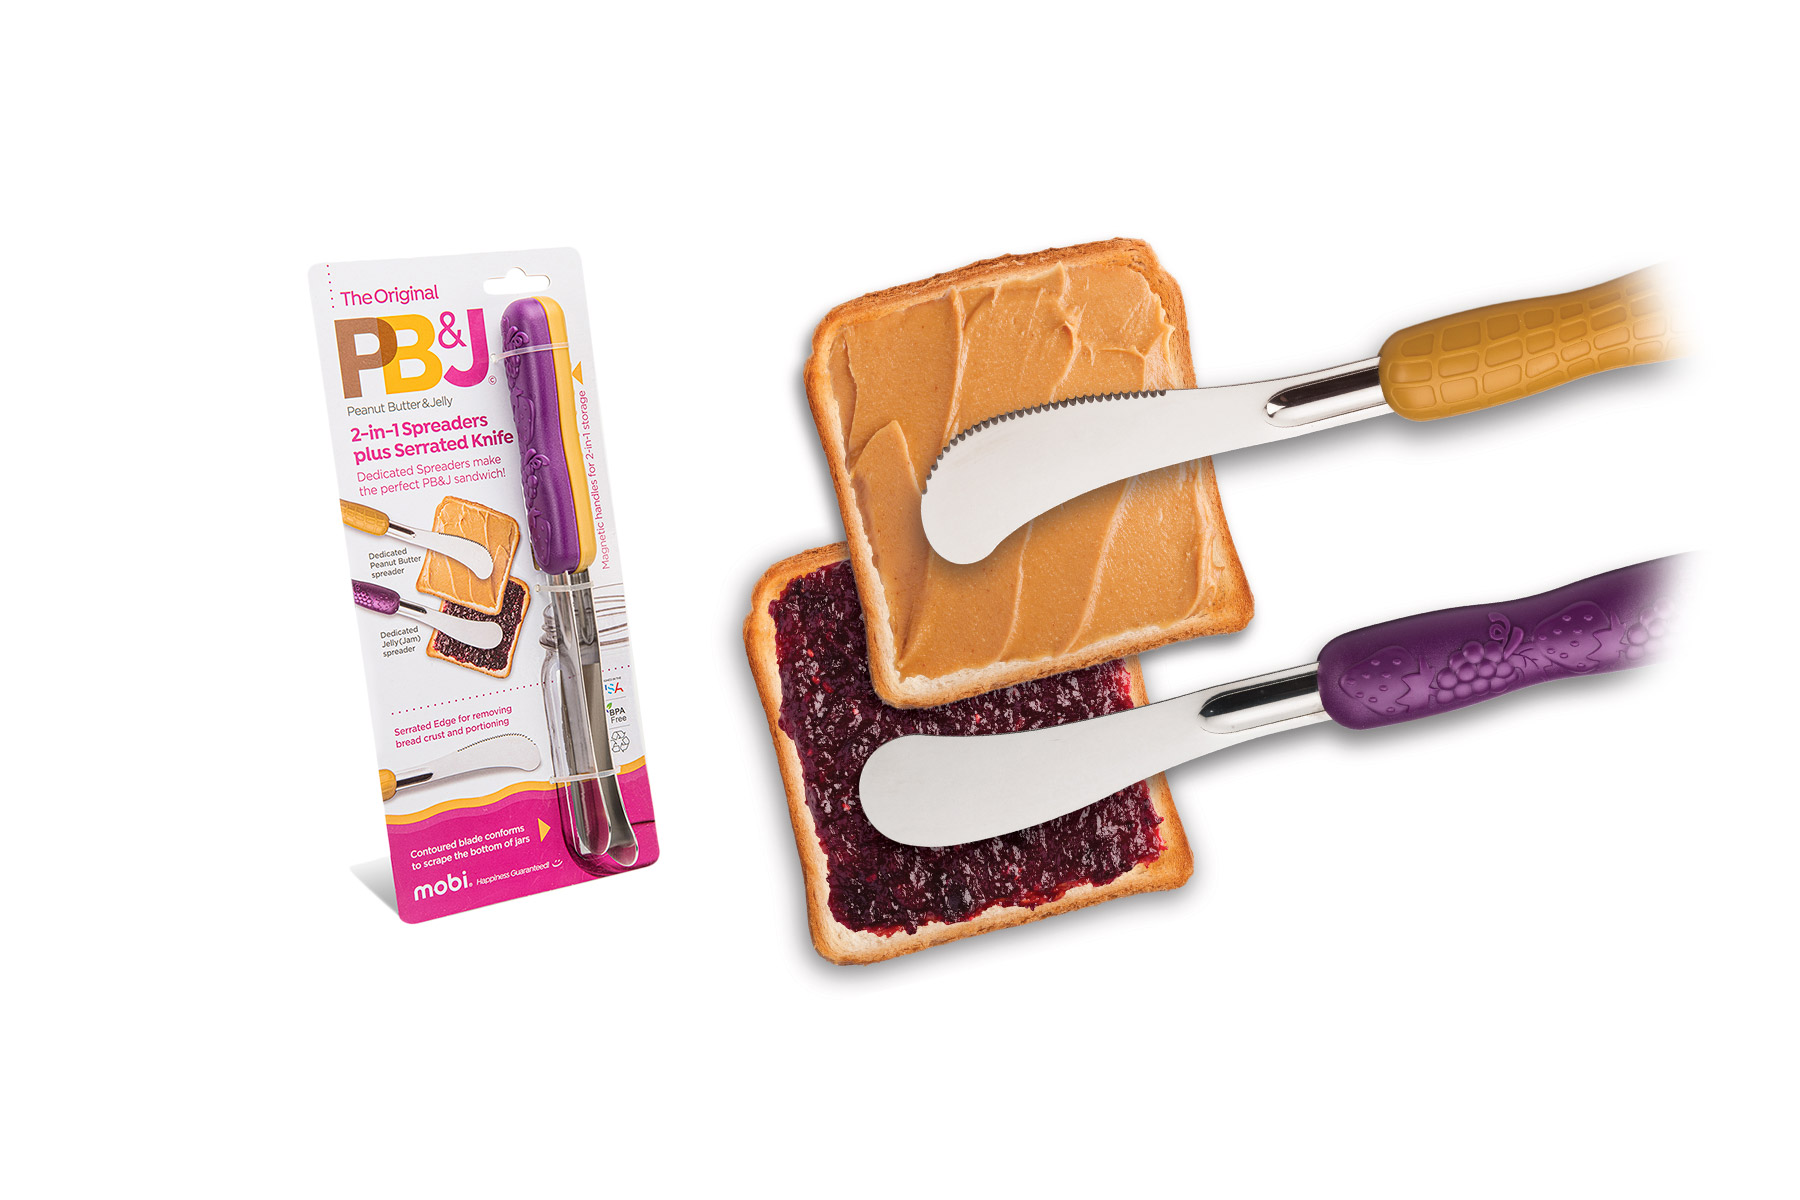 Peanut Butter & Jelly Spreaders